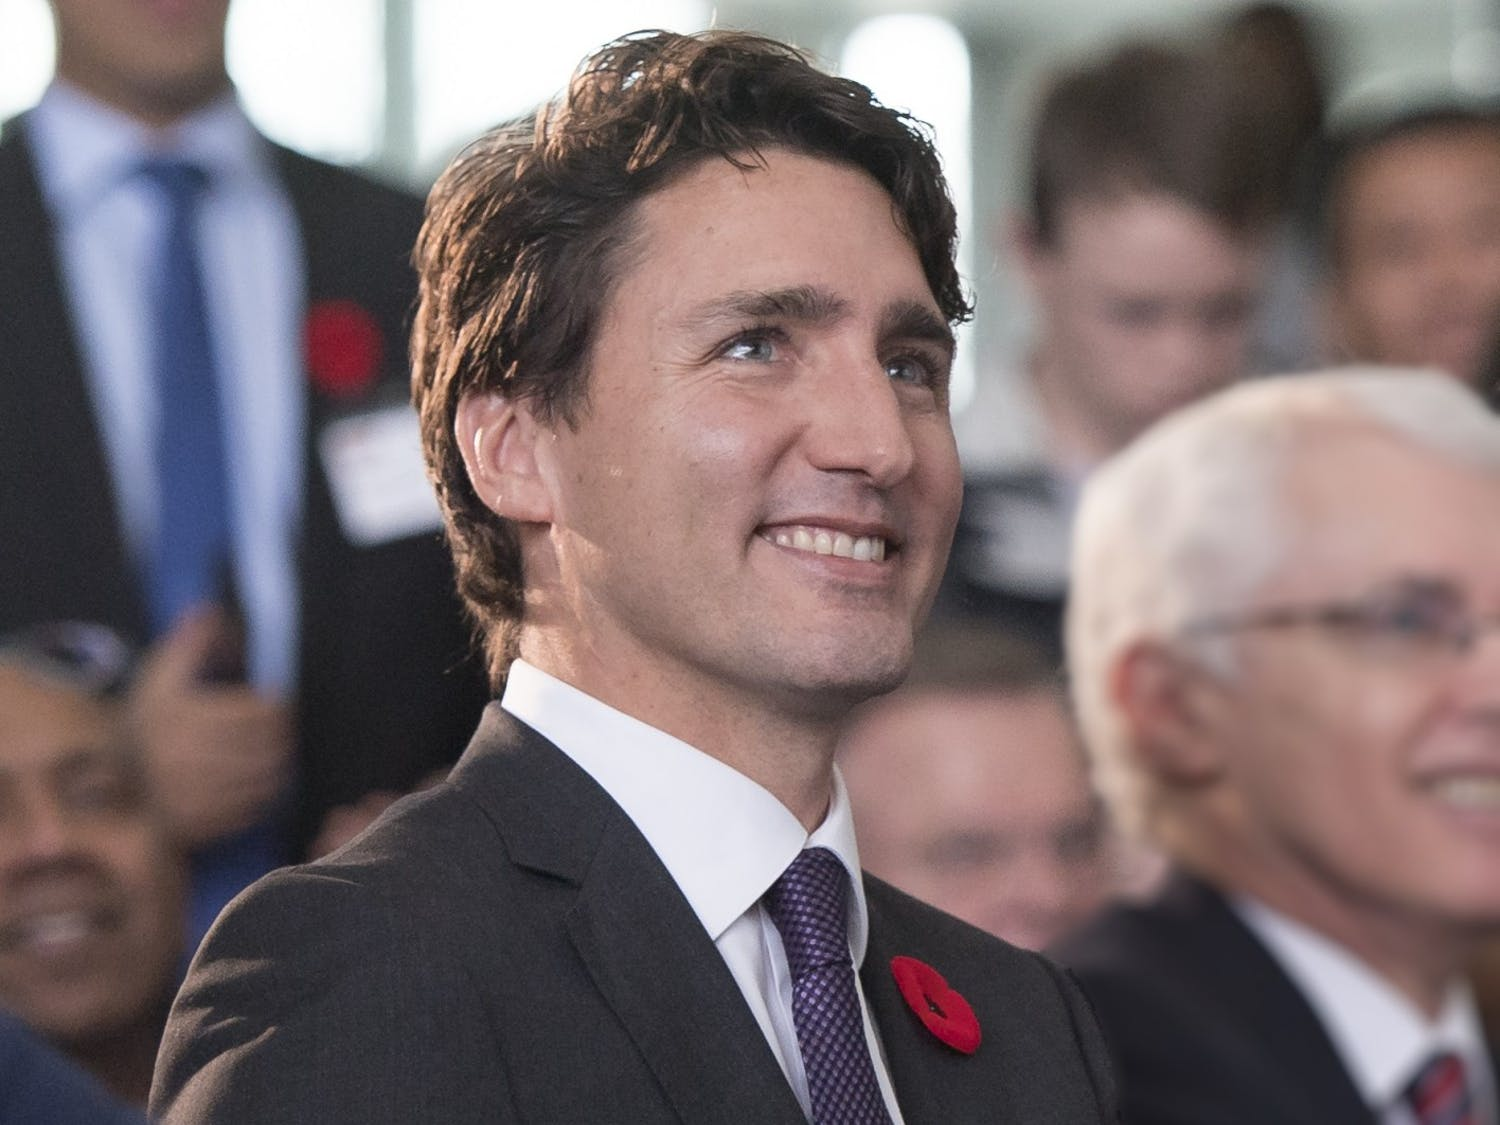 Liberal party leader Justin Trudeau hopes to win back the support of Canadian citizens following his recent controversies, including brownface, corruption and alleged sexual assault.